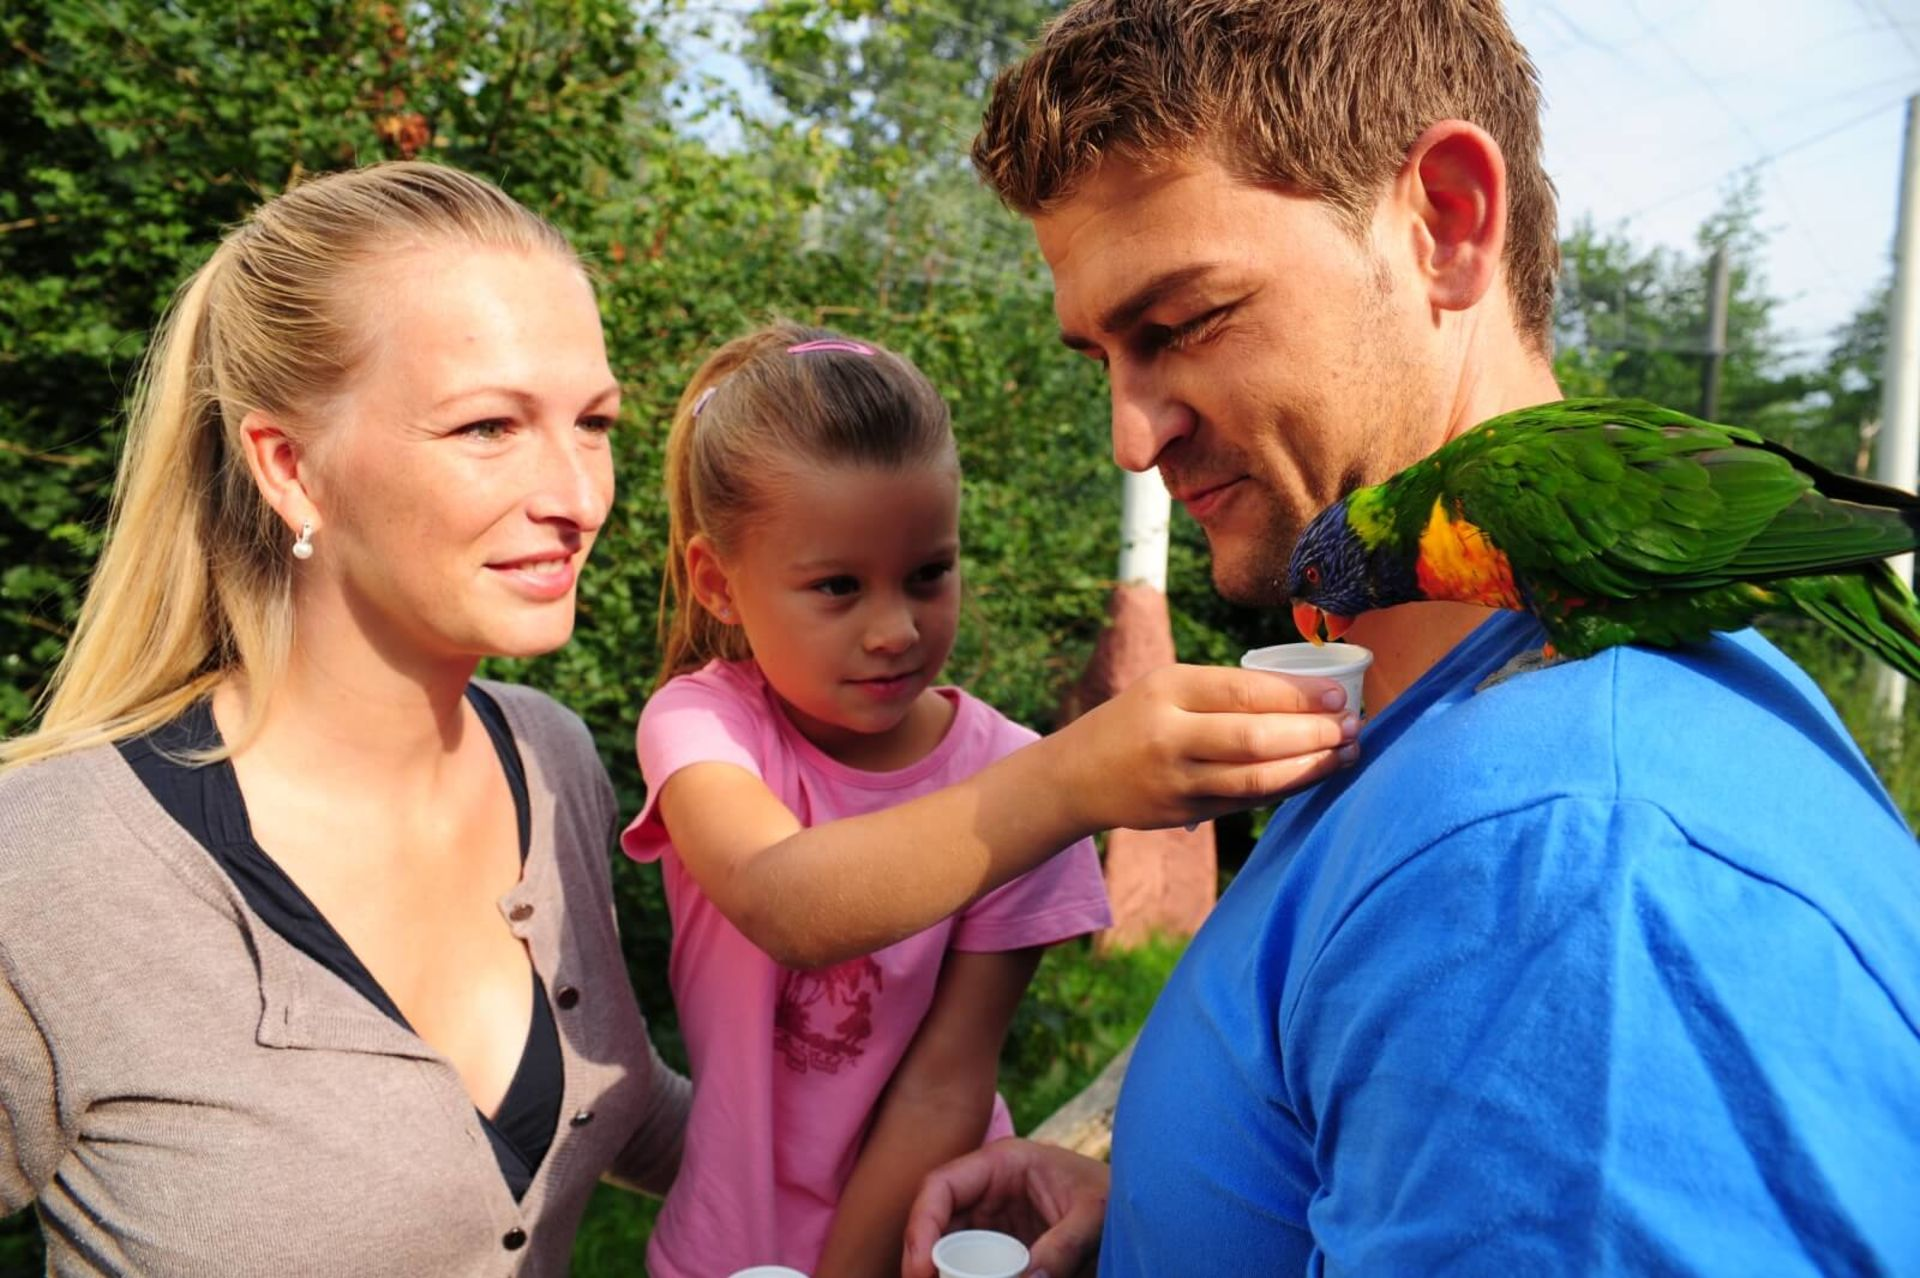 Feed the parrots